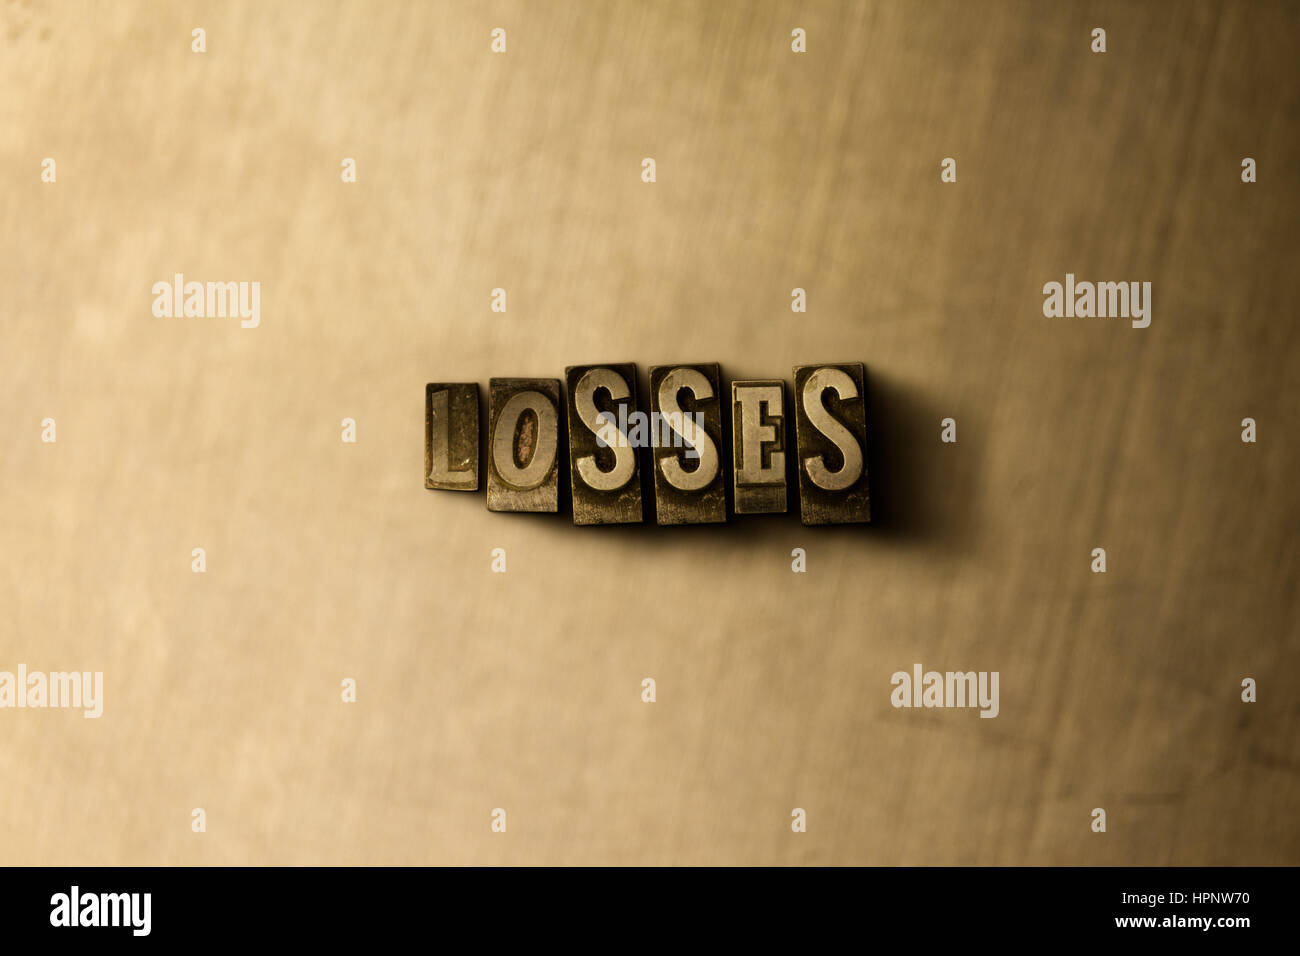 LOSSES - close-up of grungy vintage typeset word on metal backdrop. Royalty free stock illustration.  Can be used - Stock Image